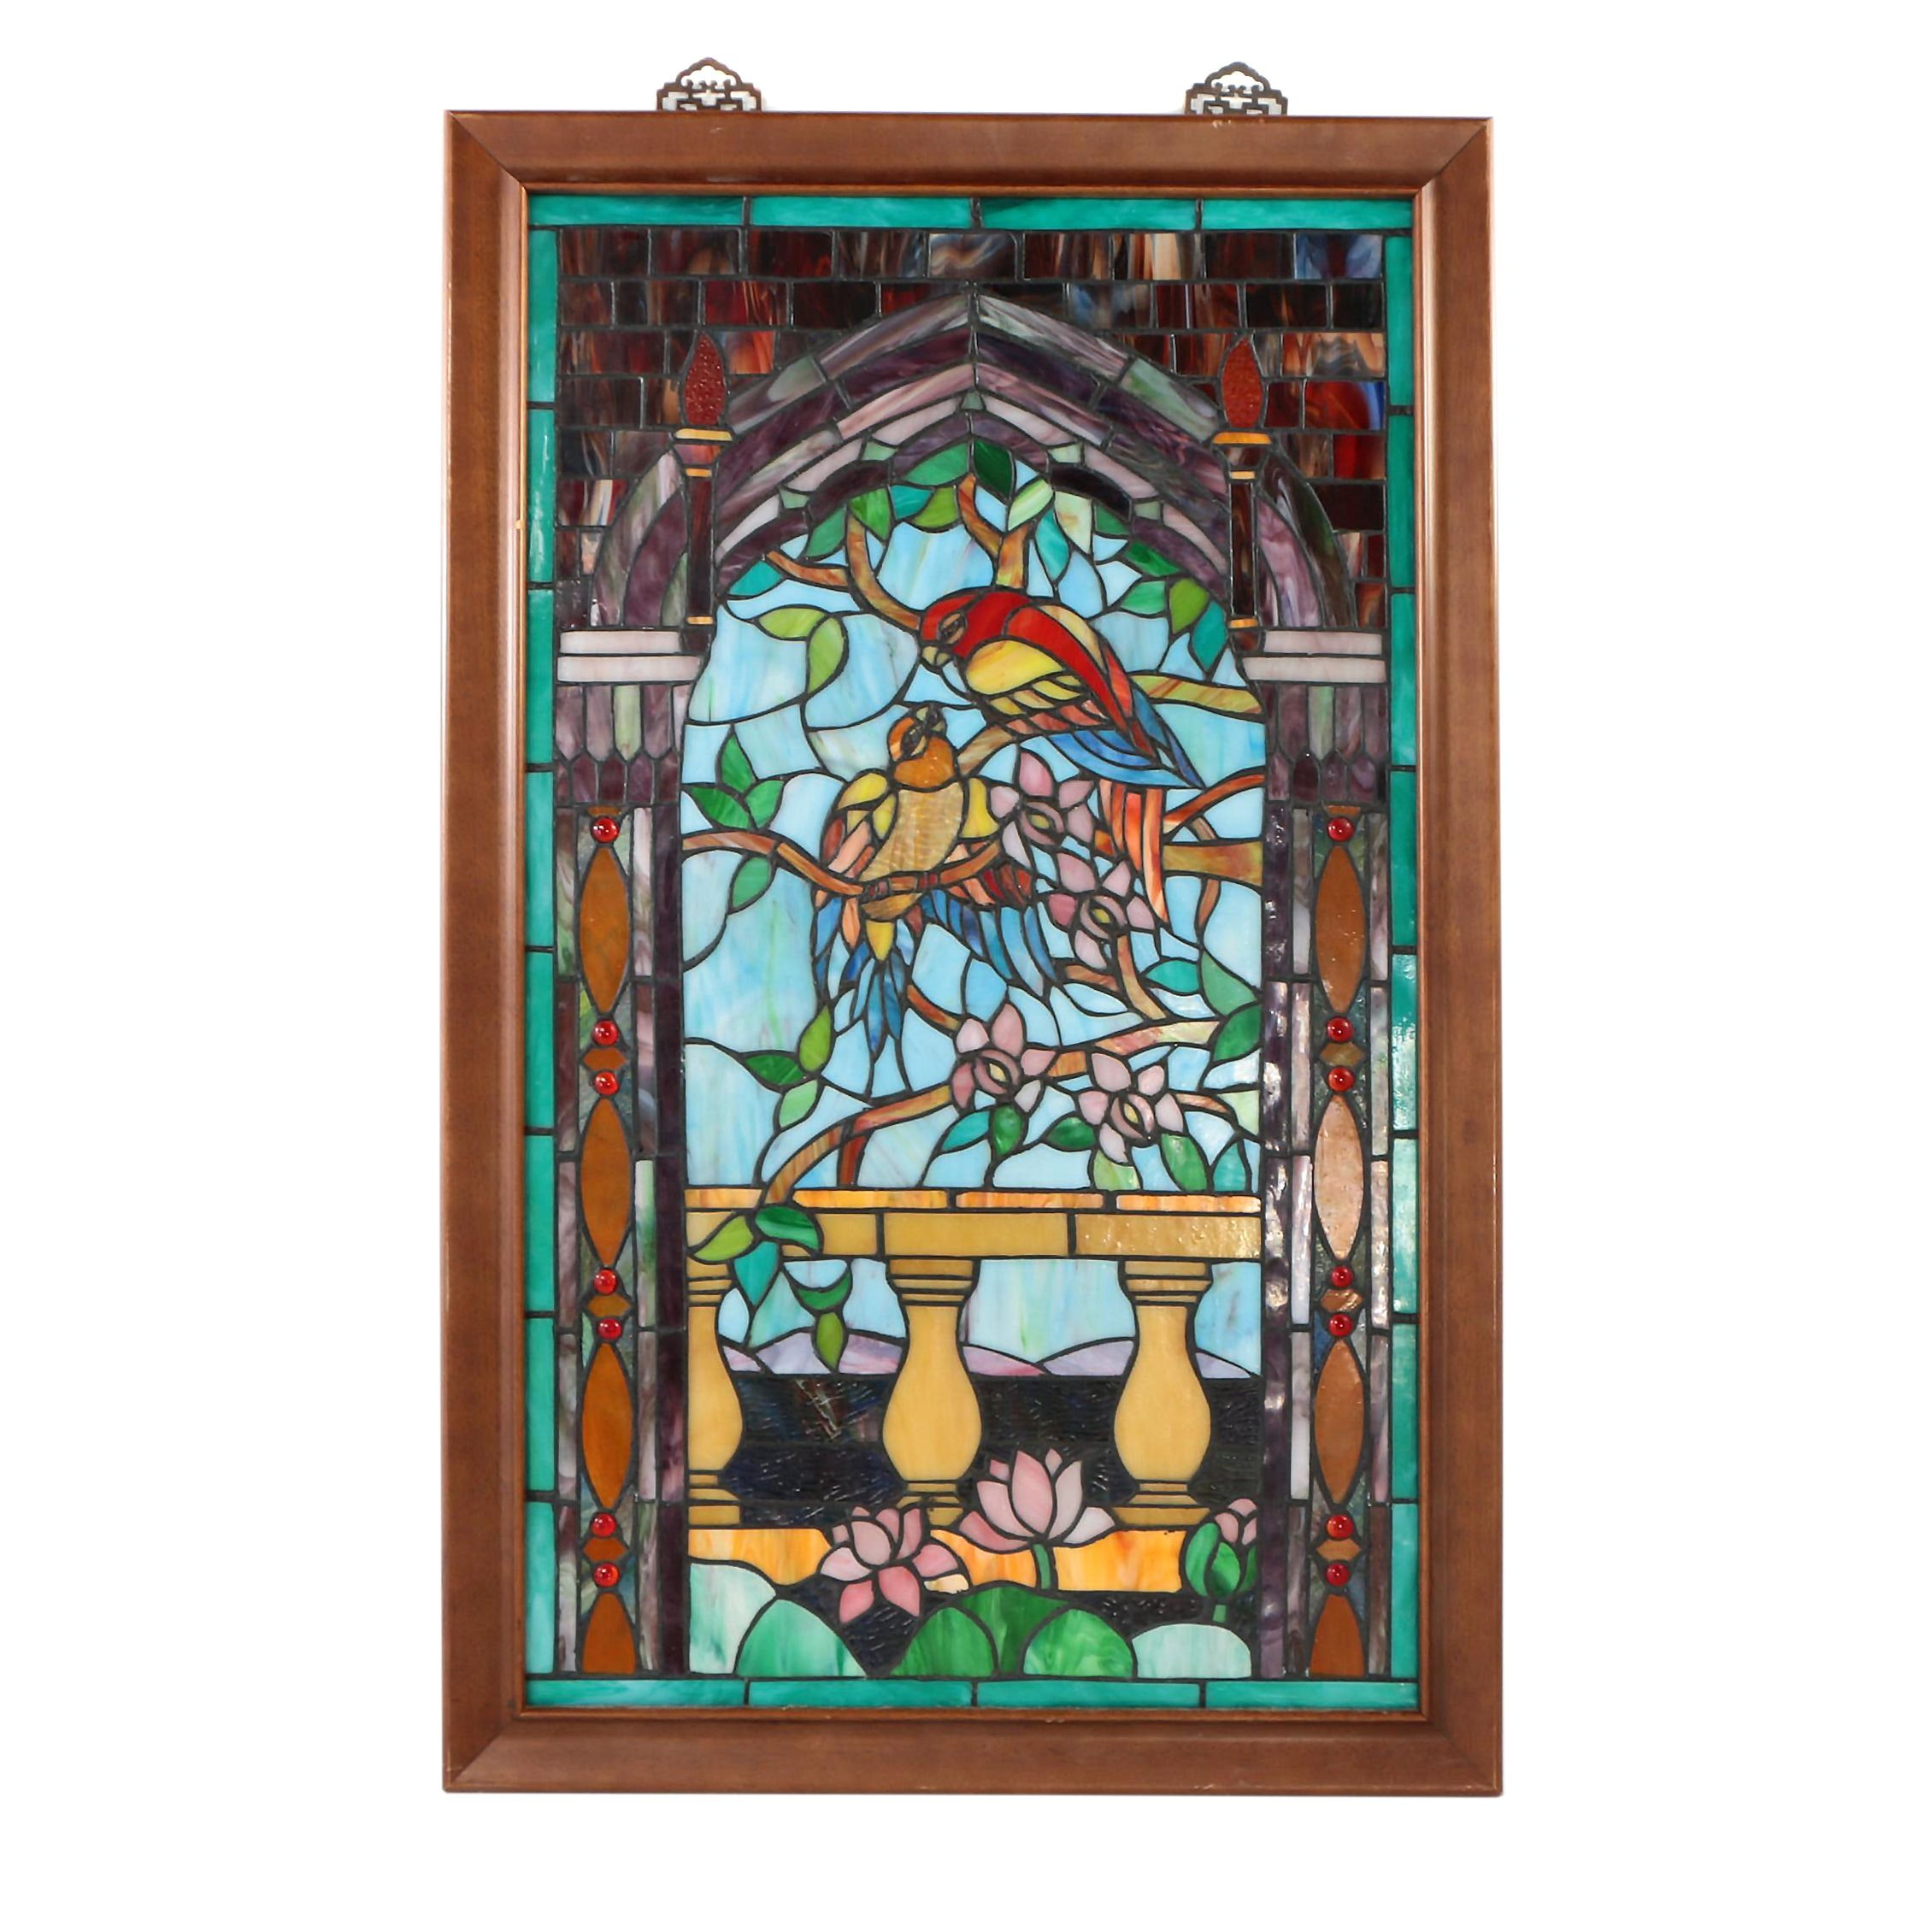 Framed Stained Glass Panel of Pair of Parrots